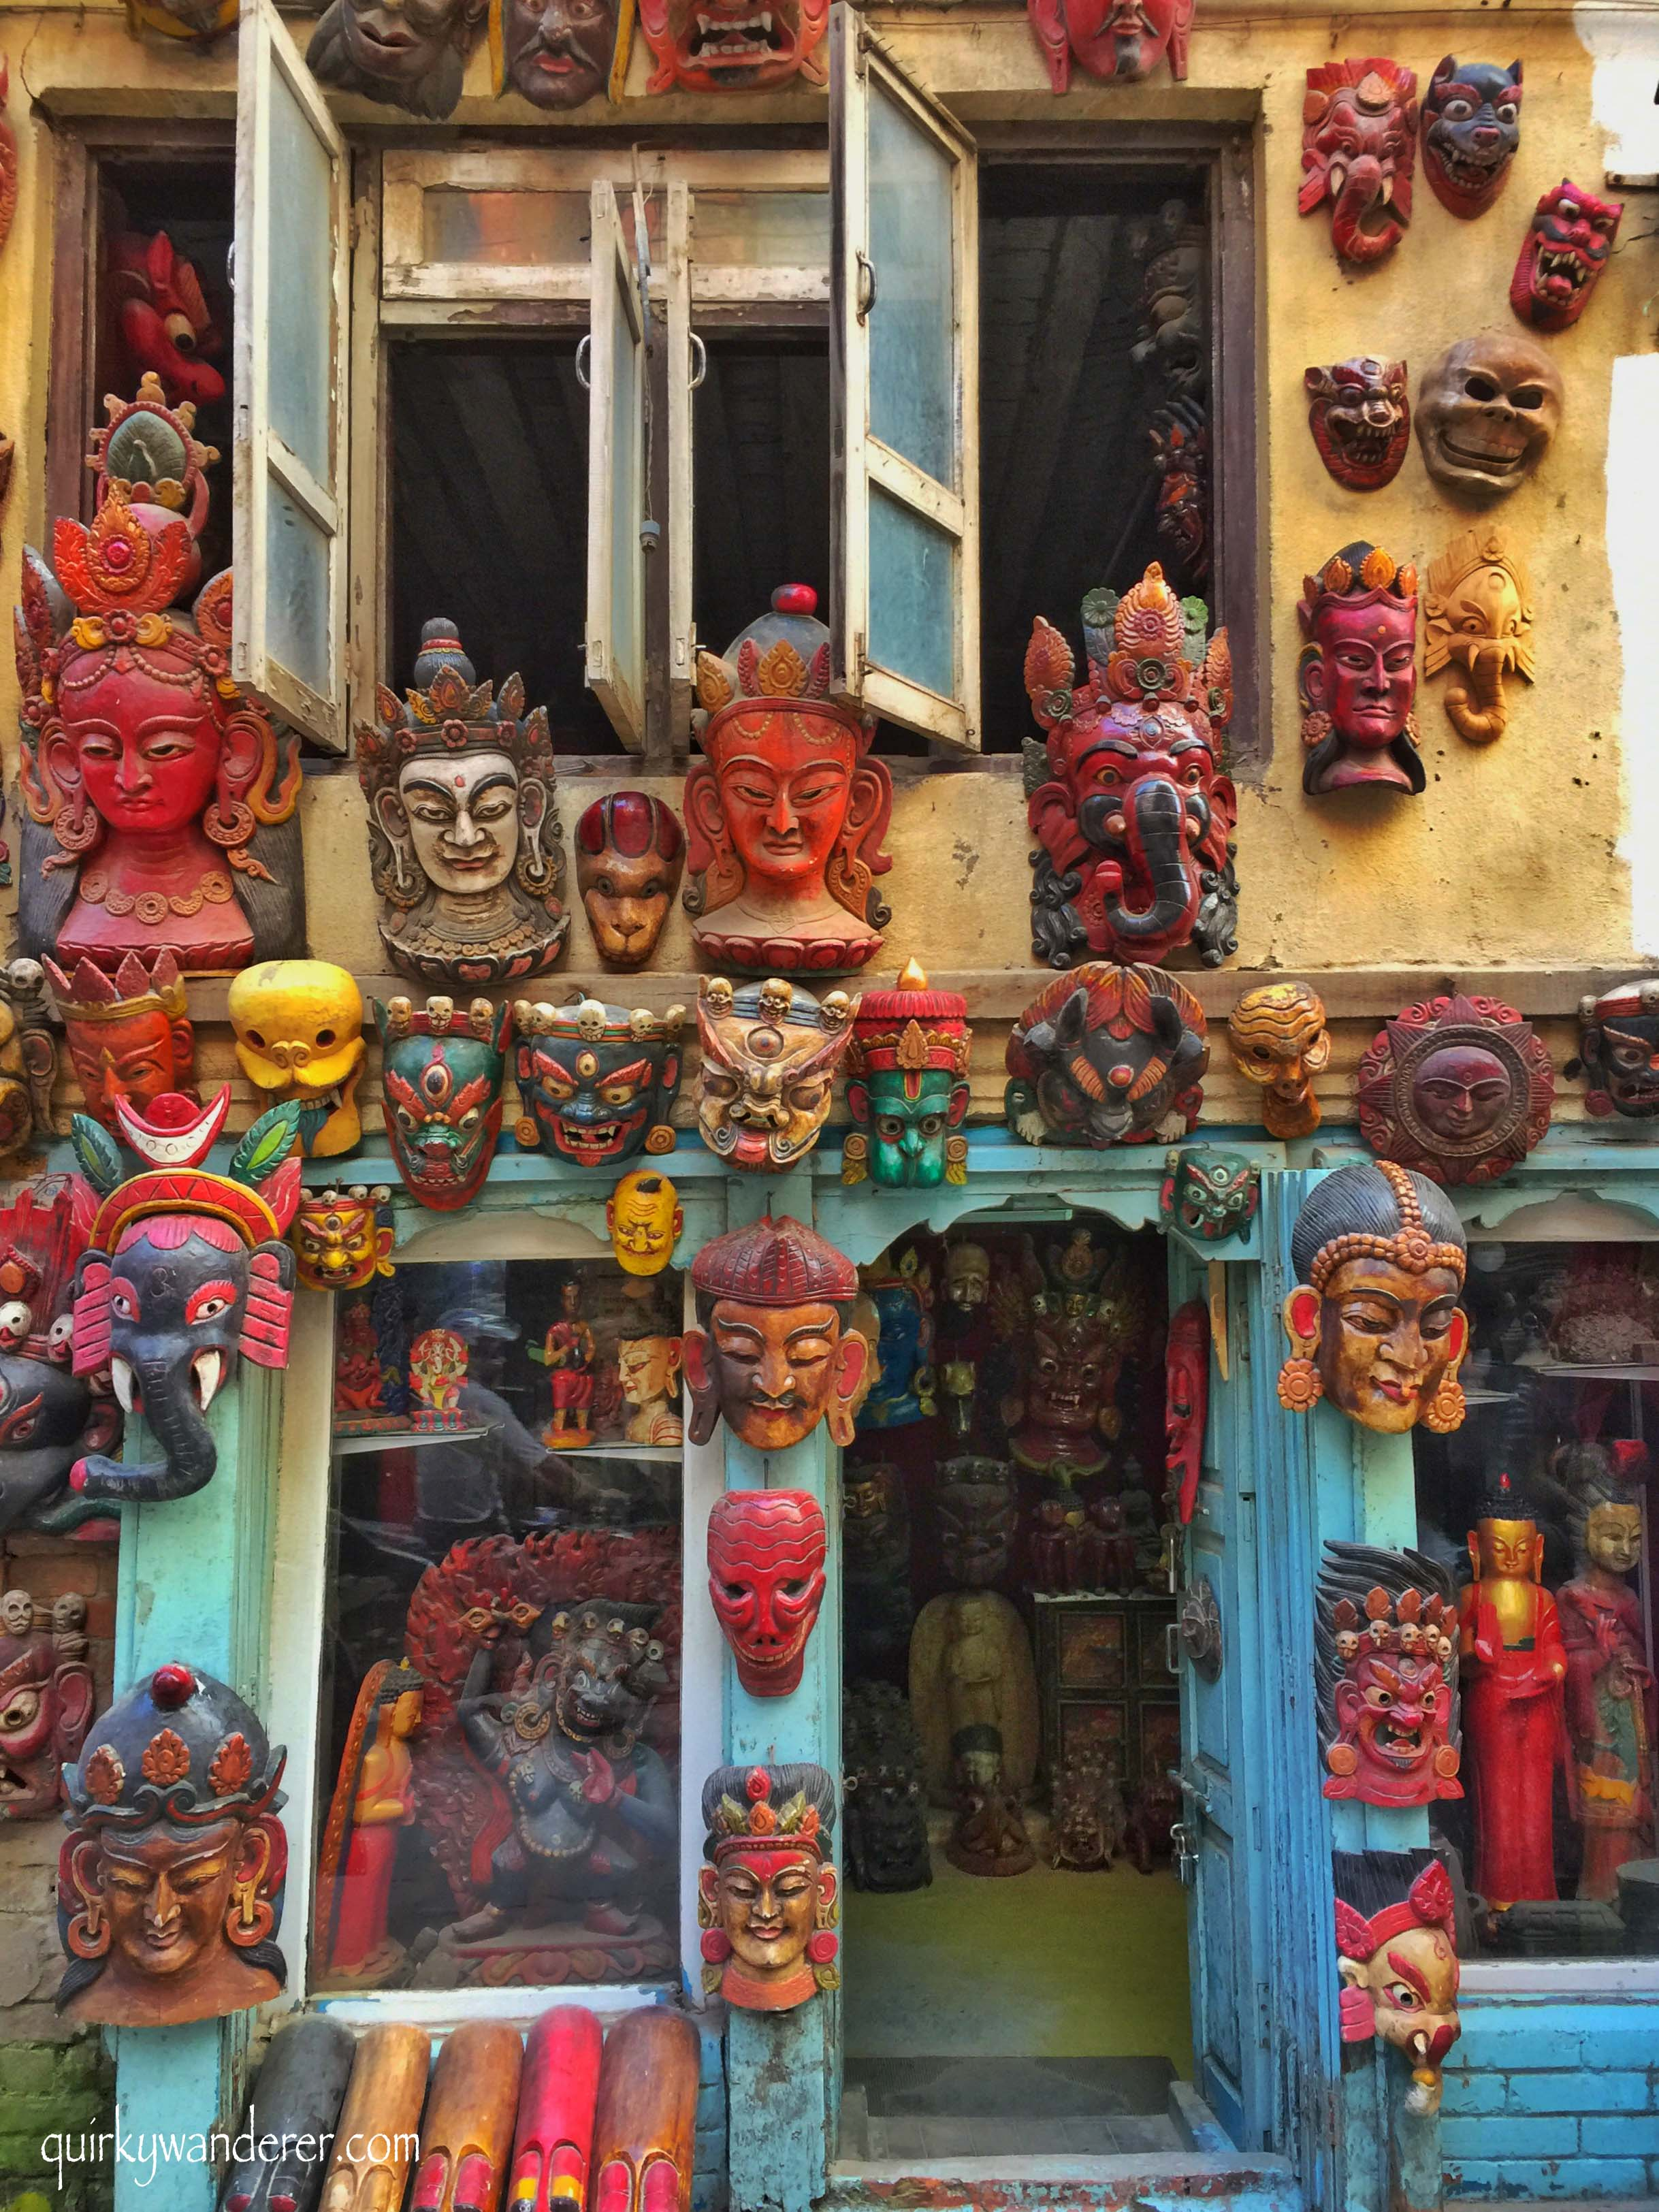 Shopping In Nepal a complete guide to buy local, authentic handicrafts in Nepal